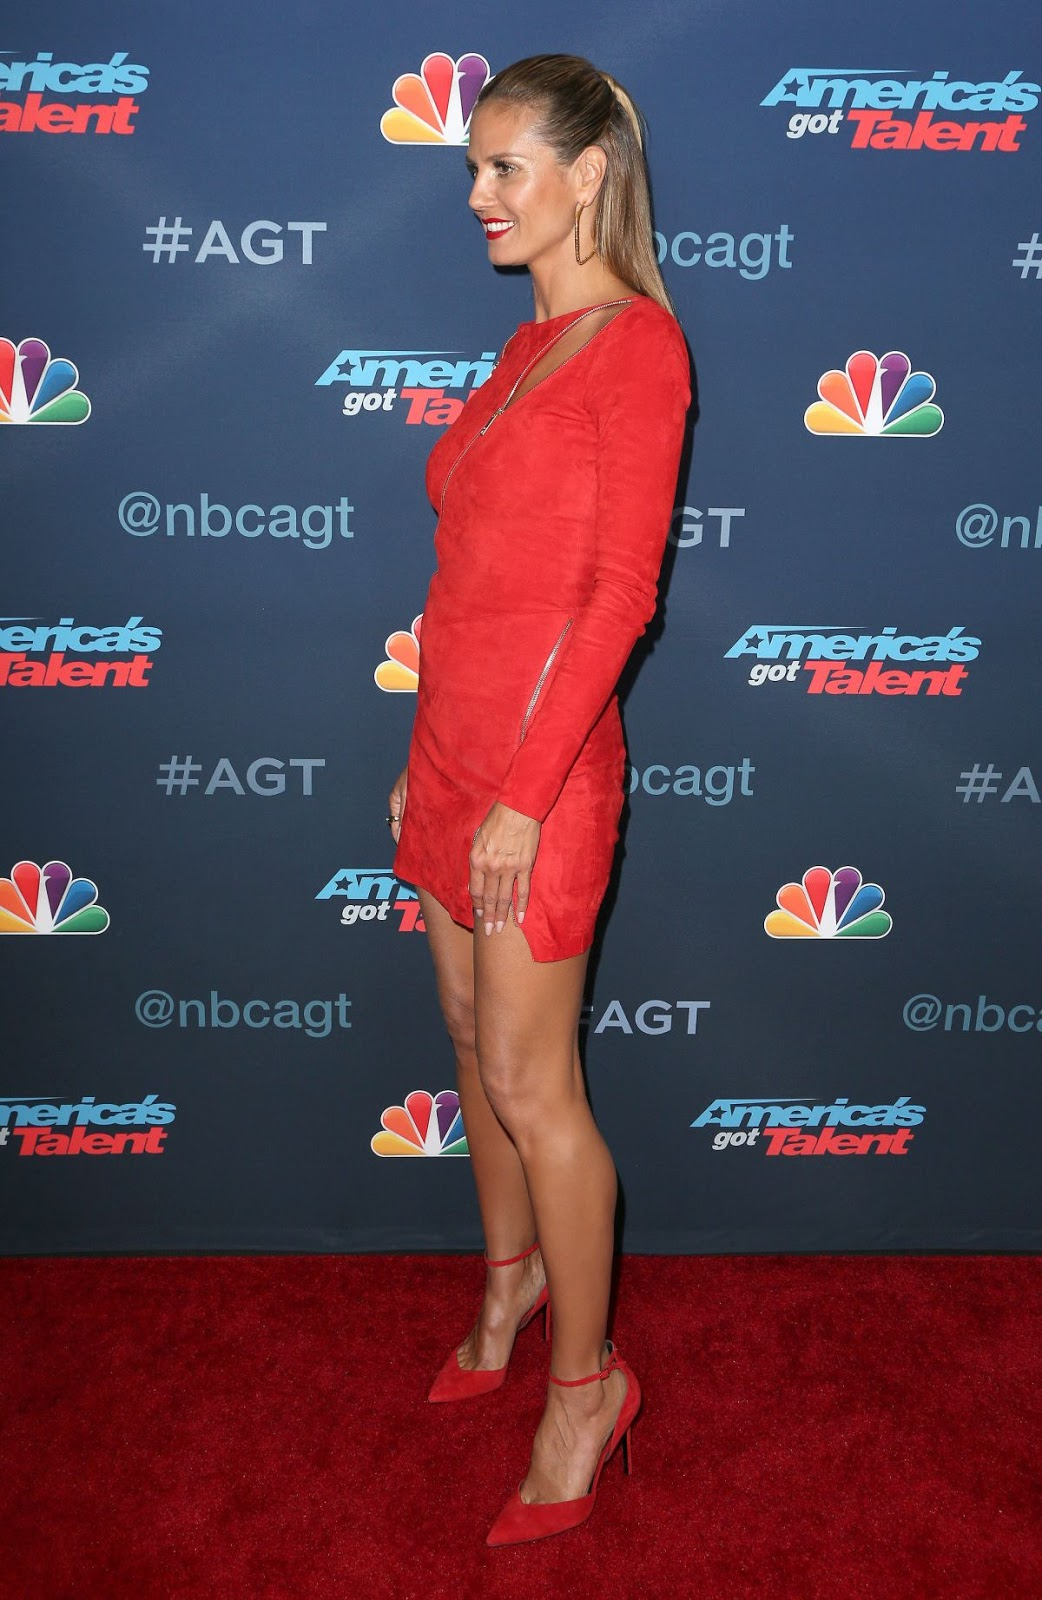 HD Photos of Heidi Klum at America's Got Talent Season 11 Llive Show in Hollywood